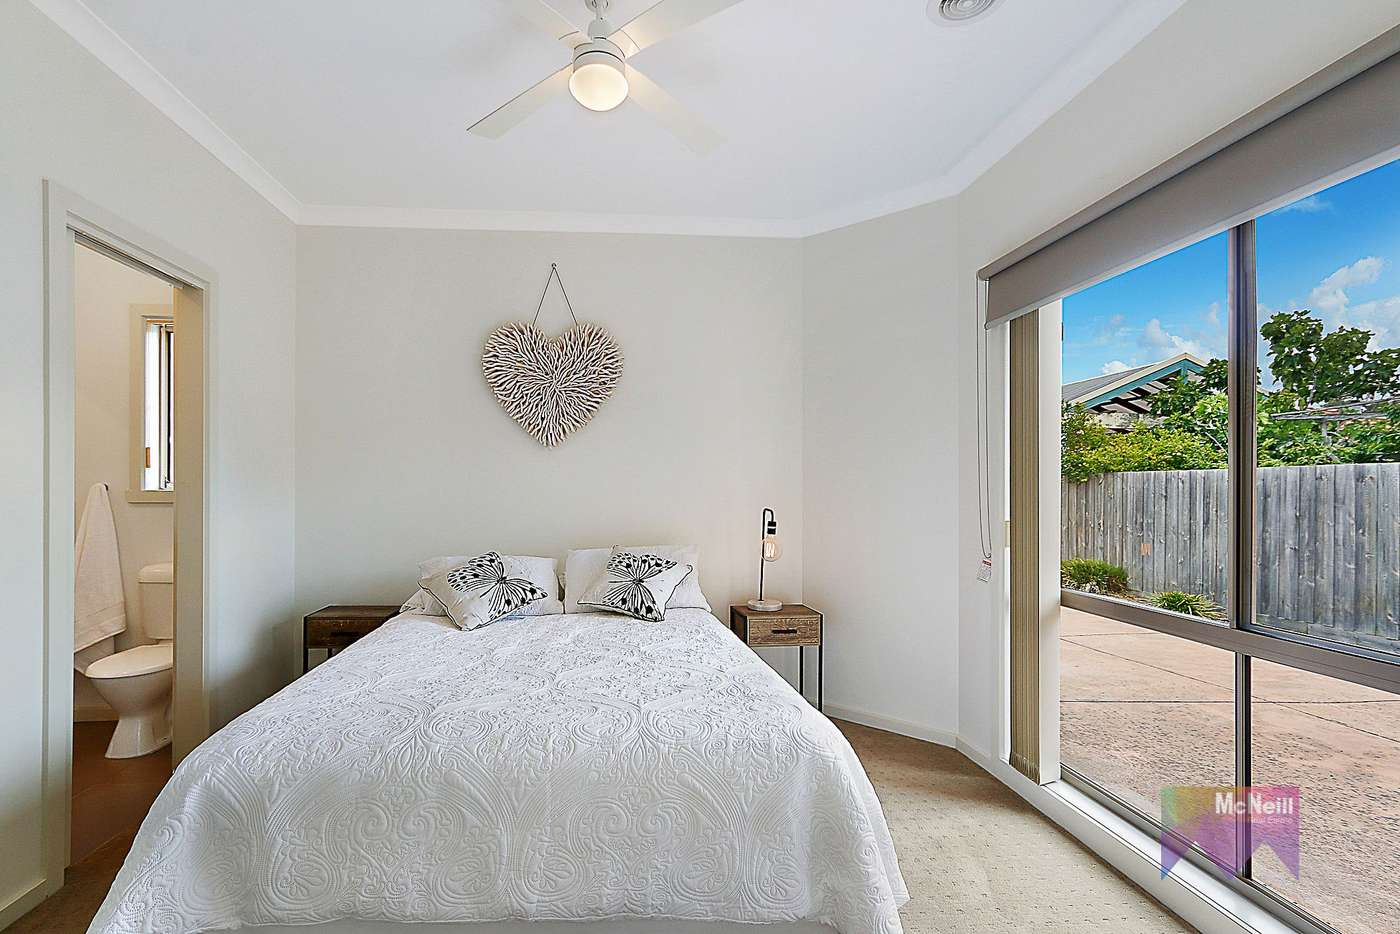 Seventh view of Homely townhouse listing, 3/26 Hygeia Street, Rye VIC 3941